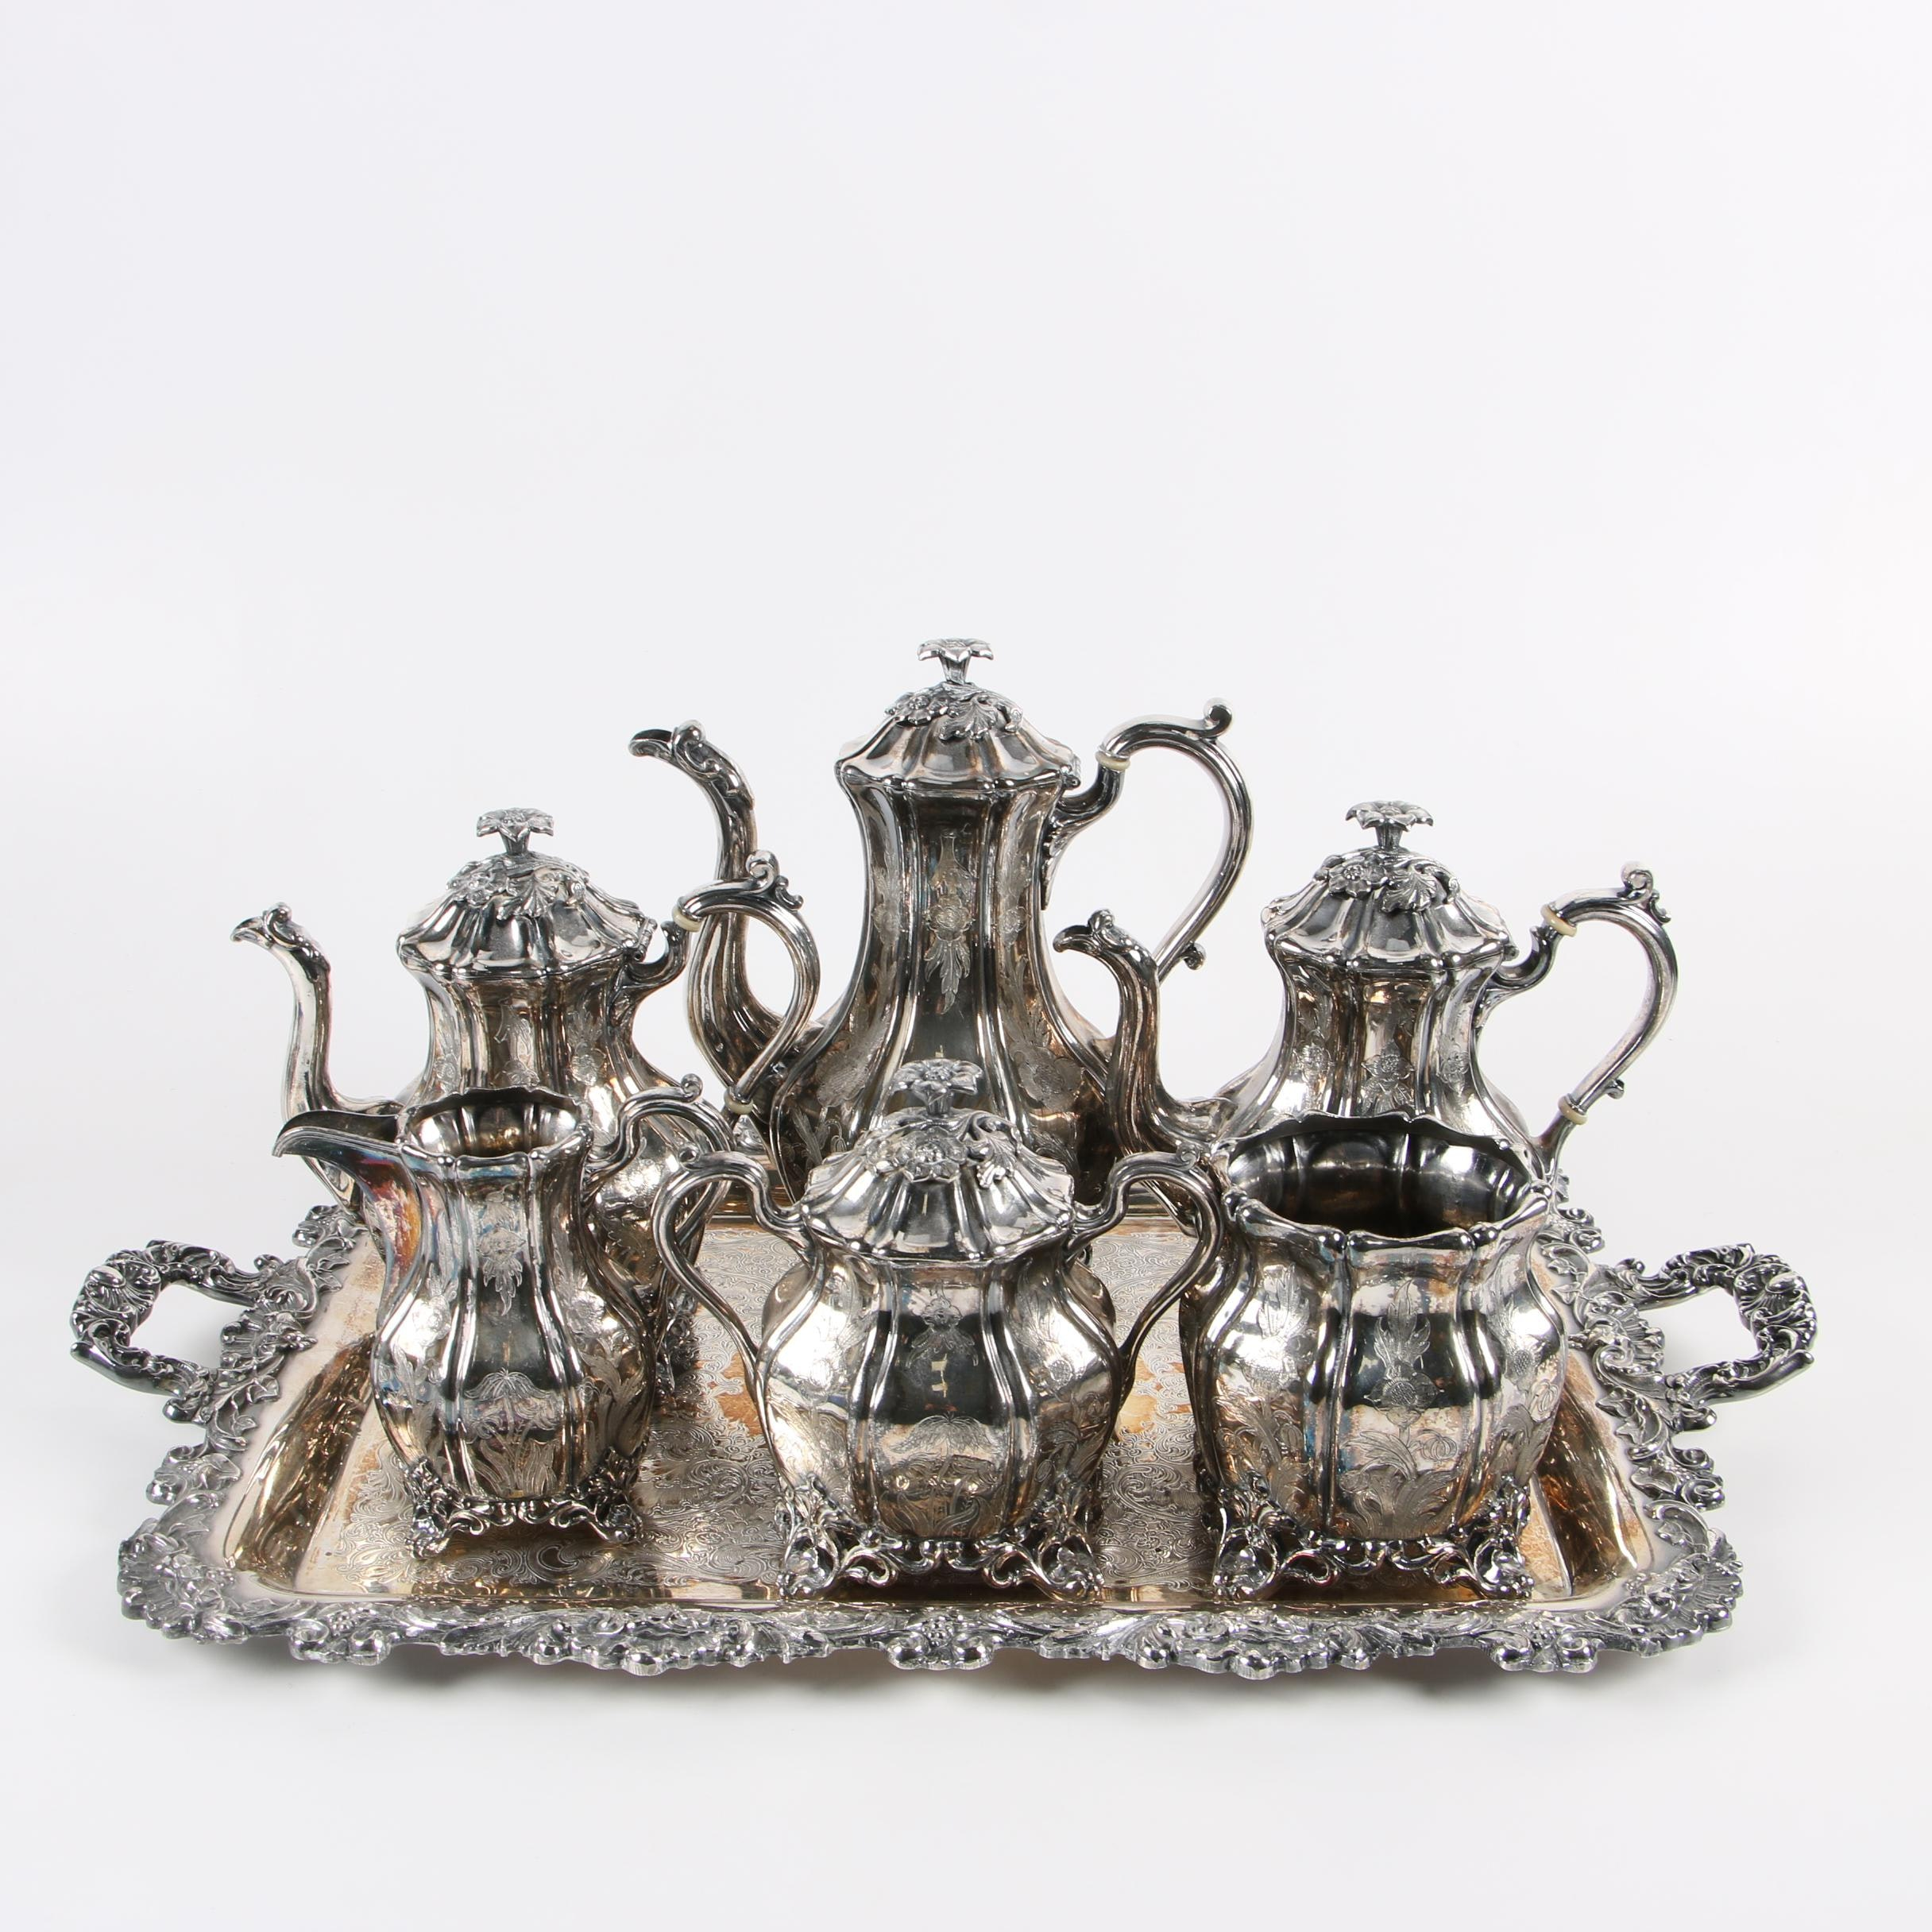 Reed & Barton Silver Plate Tea and Coffee Service with Tray, Mid-Century